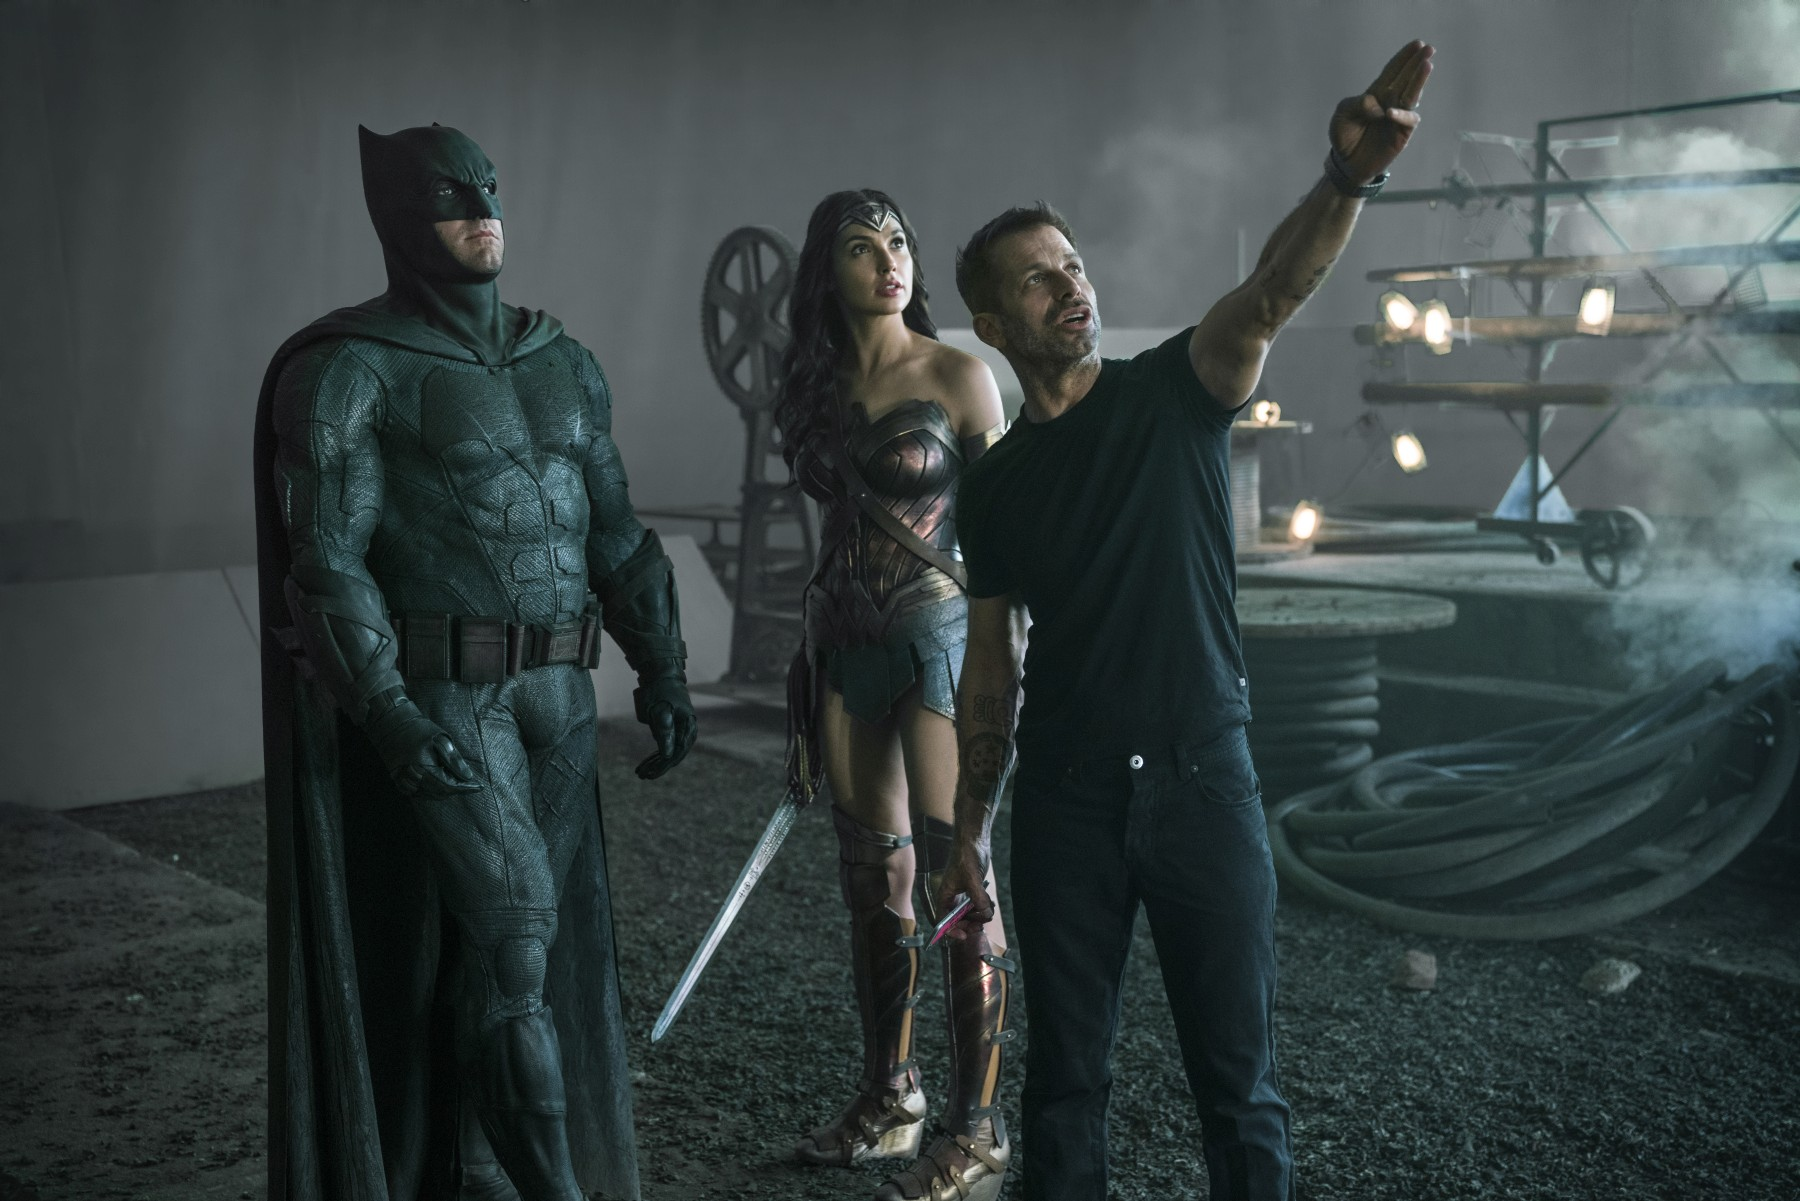 Justice League Vfx Artist Tells All In Reddit Q A Cosmic Book News